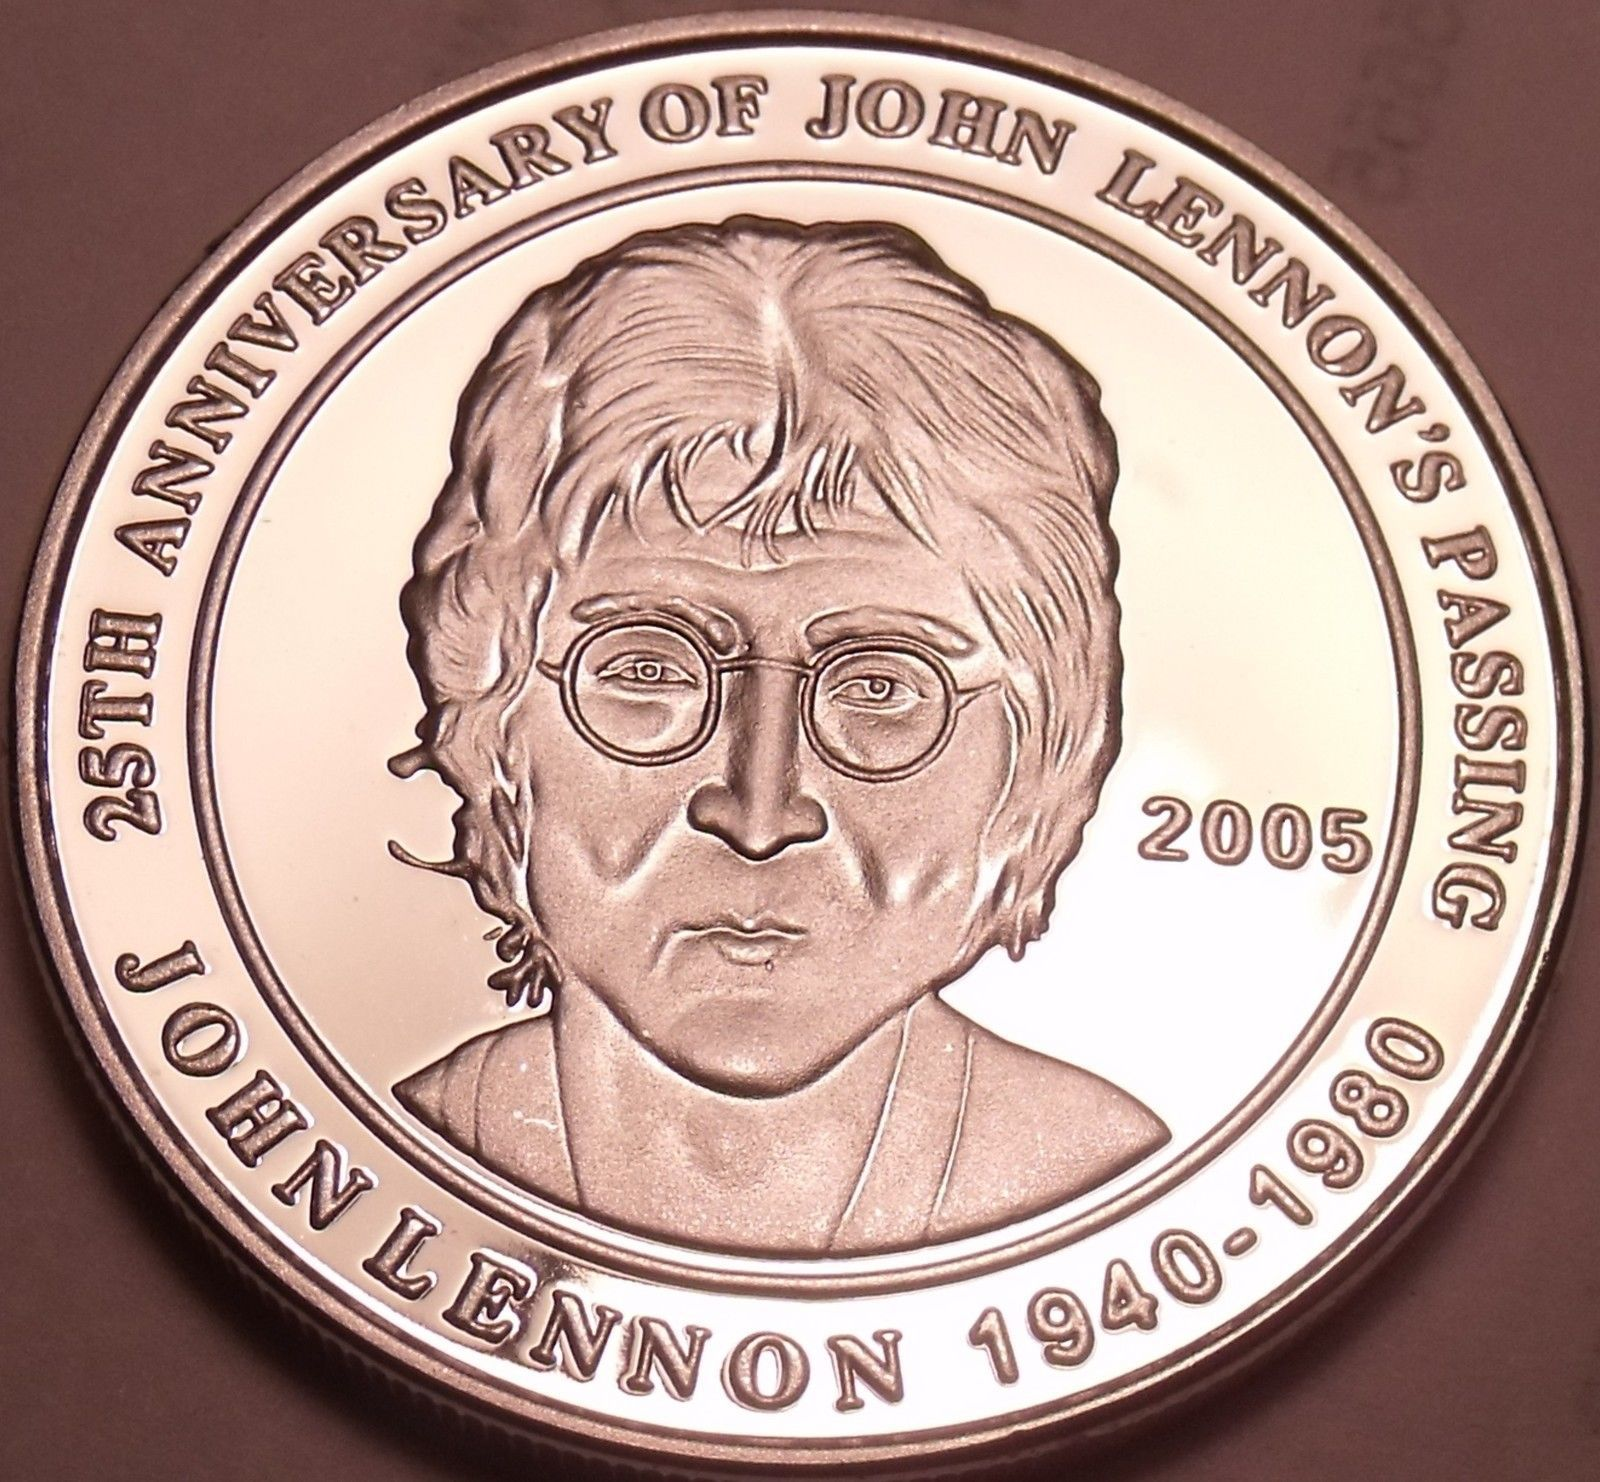 Primary image for Cameo Proof Cook Islands Commemorative Silver Medallion~John Lennons Passing~F/S